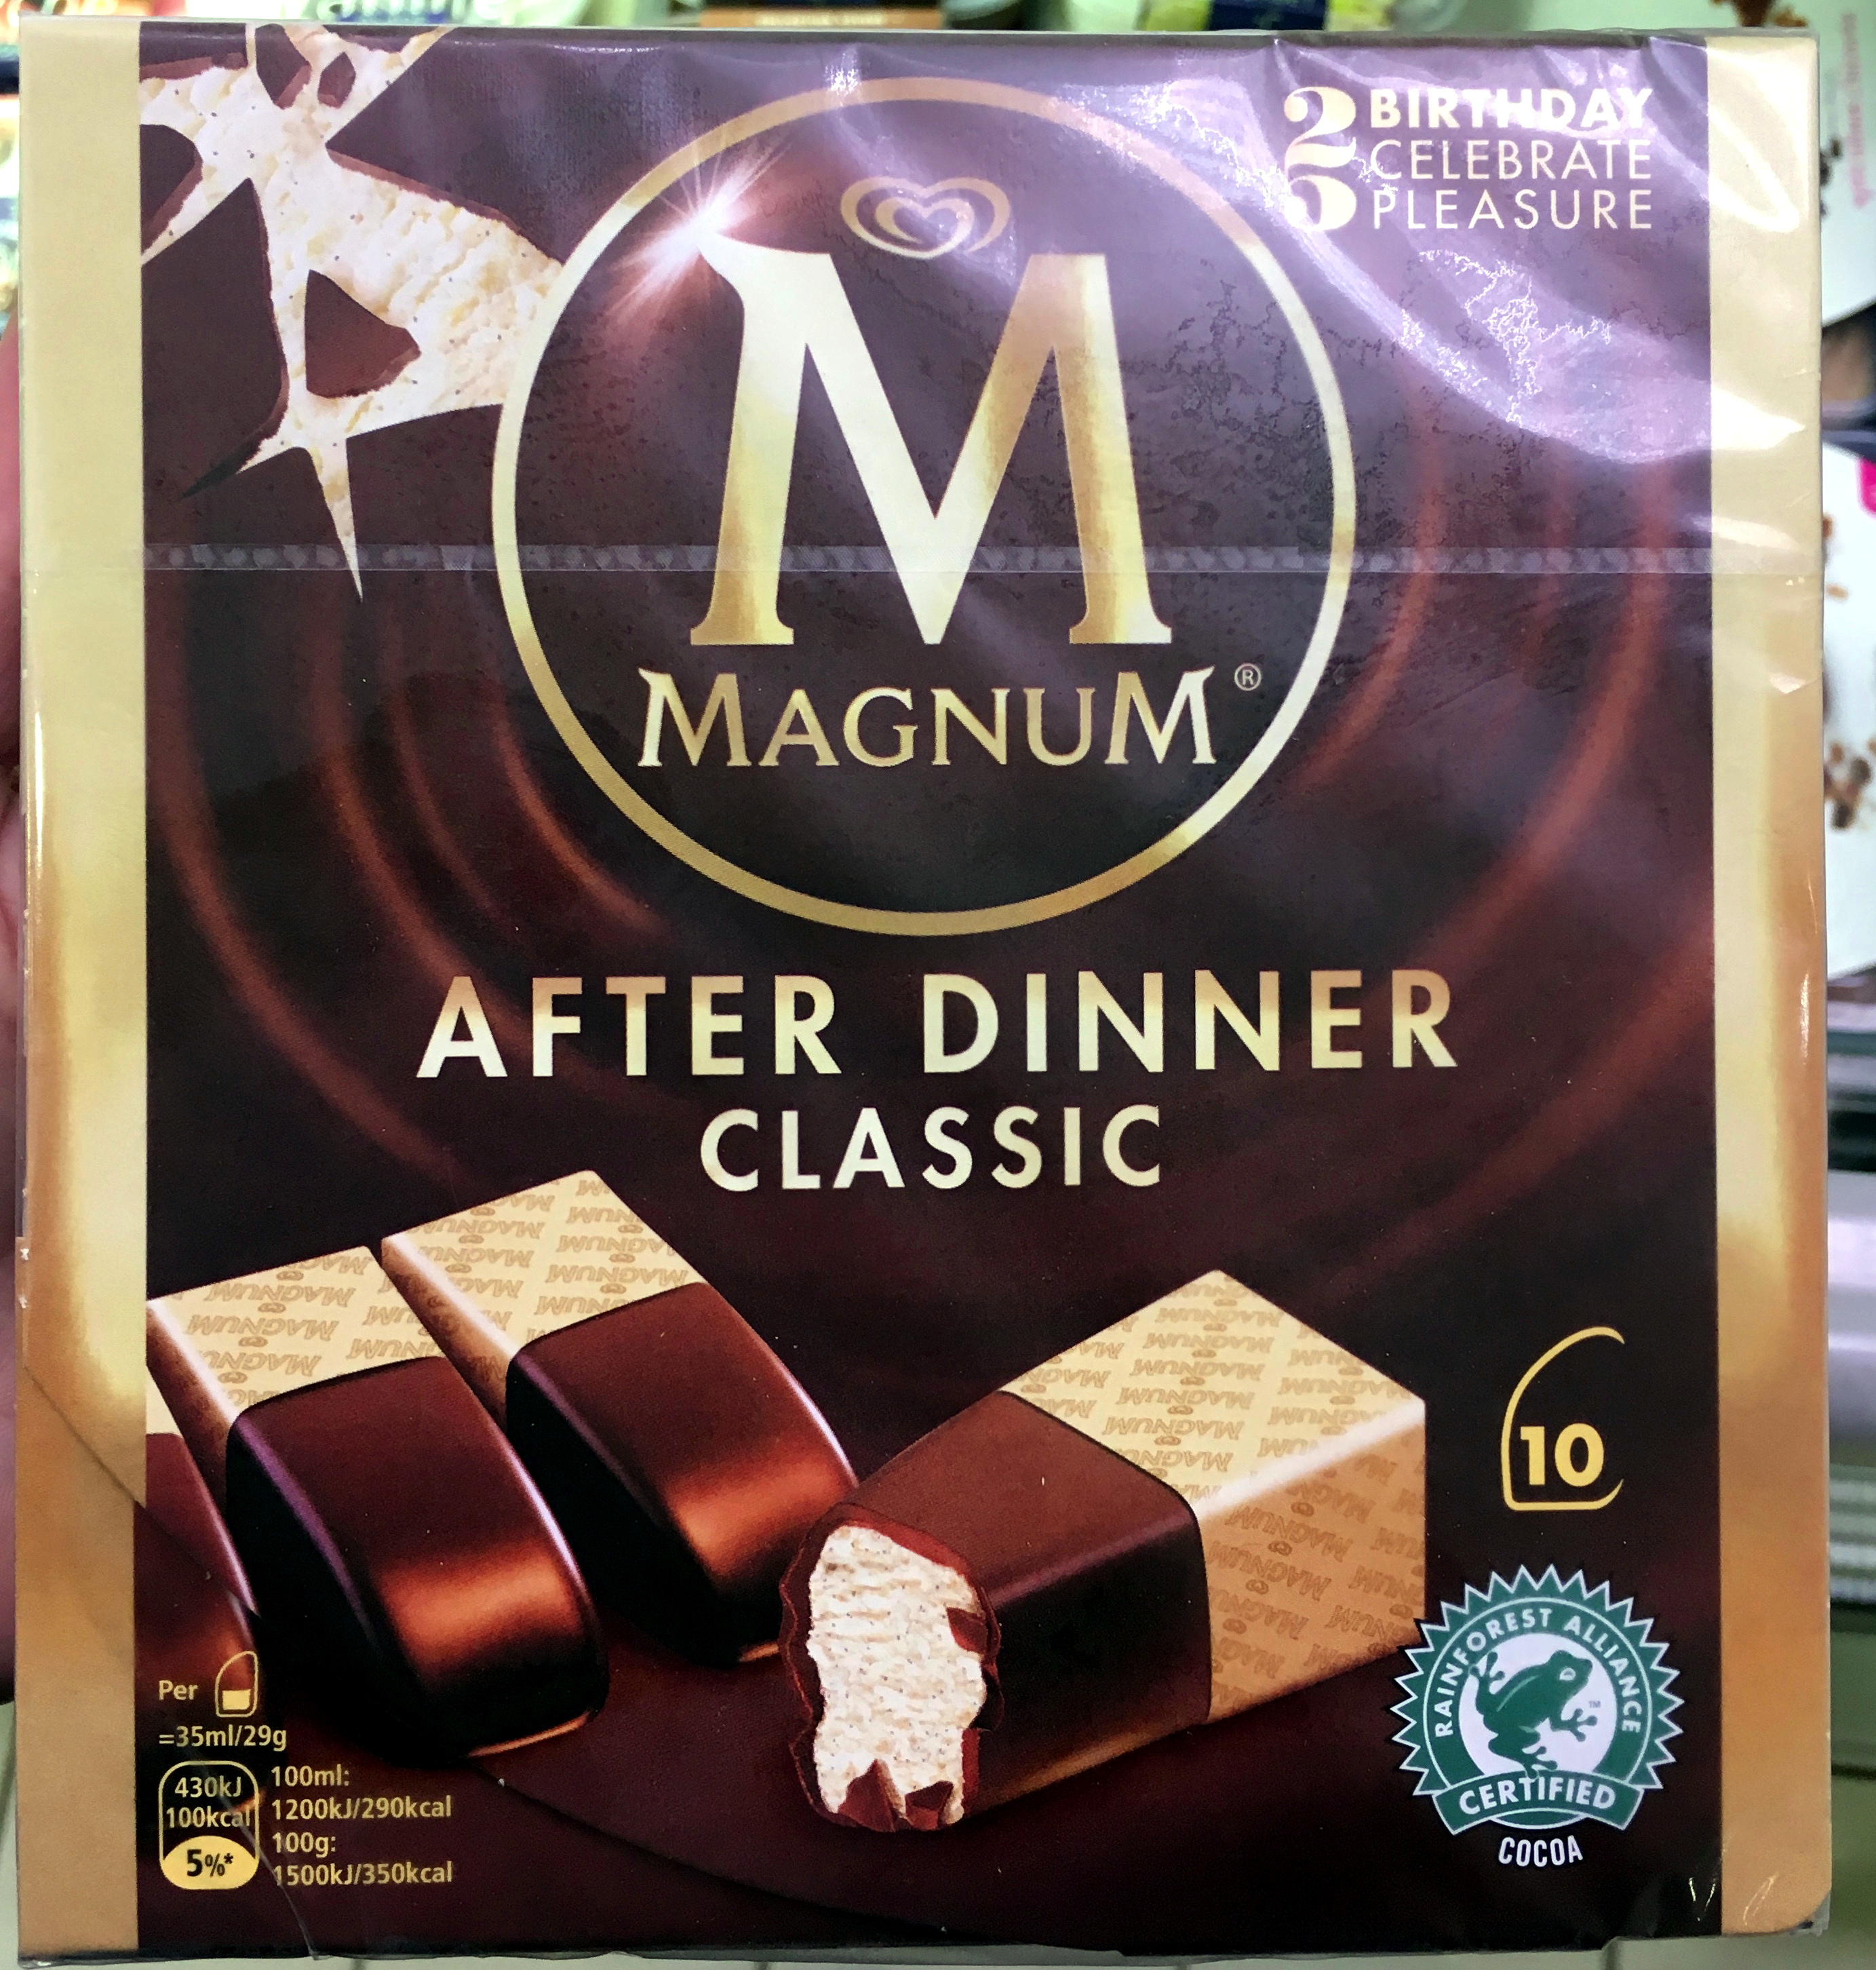 Magnum Barre Glacée After Dinner x10 350ml - Prodotto - fr